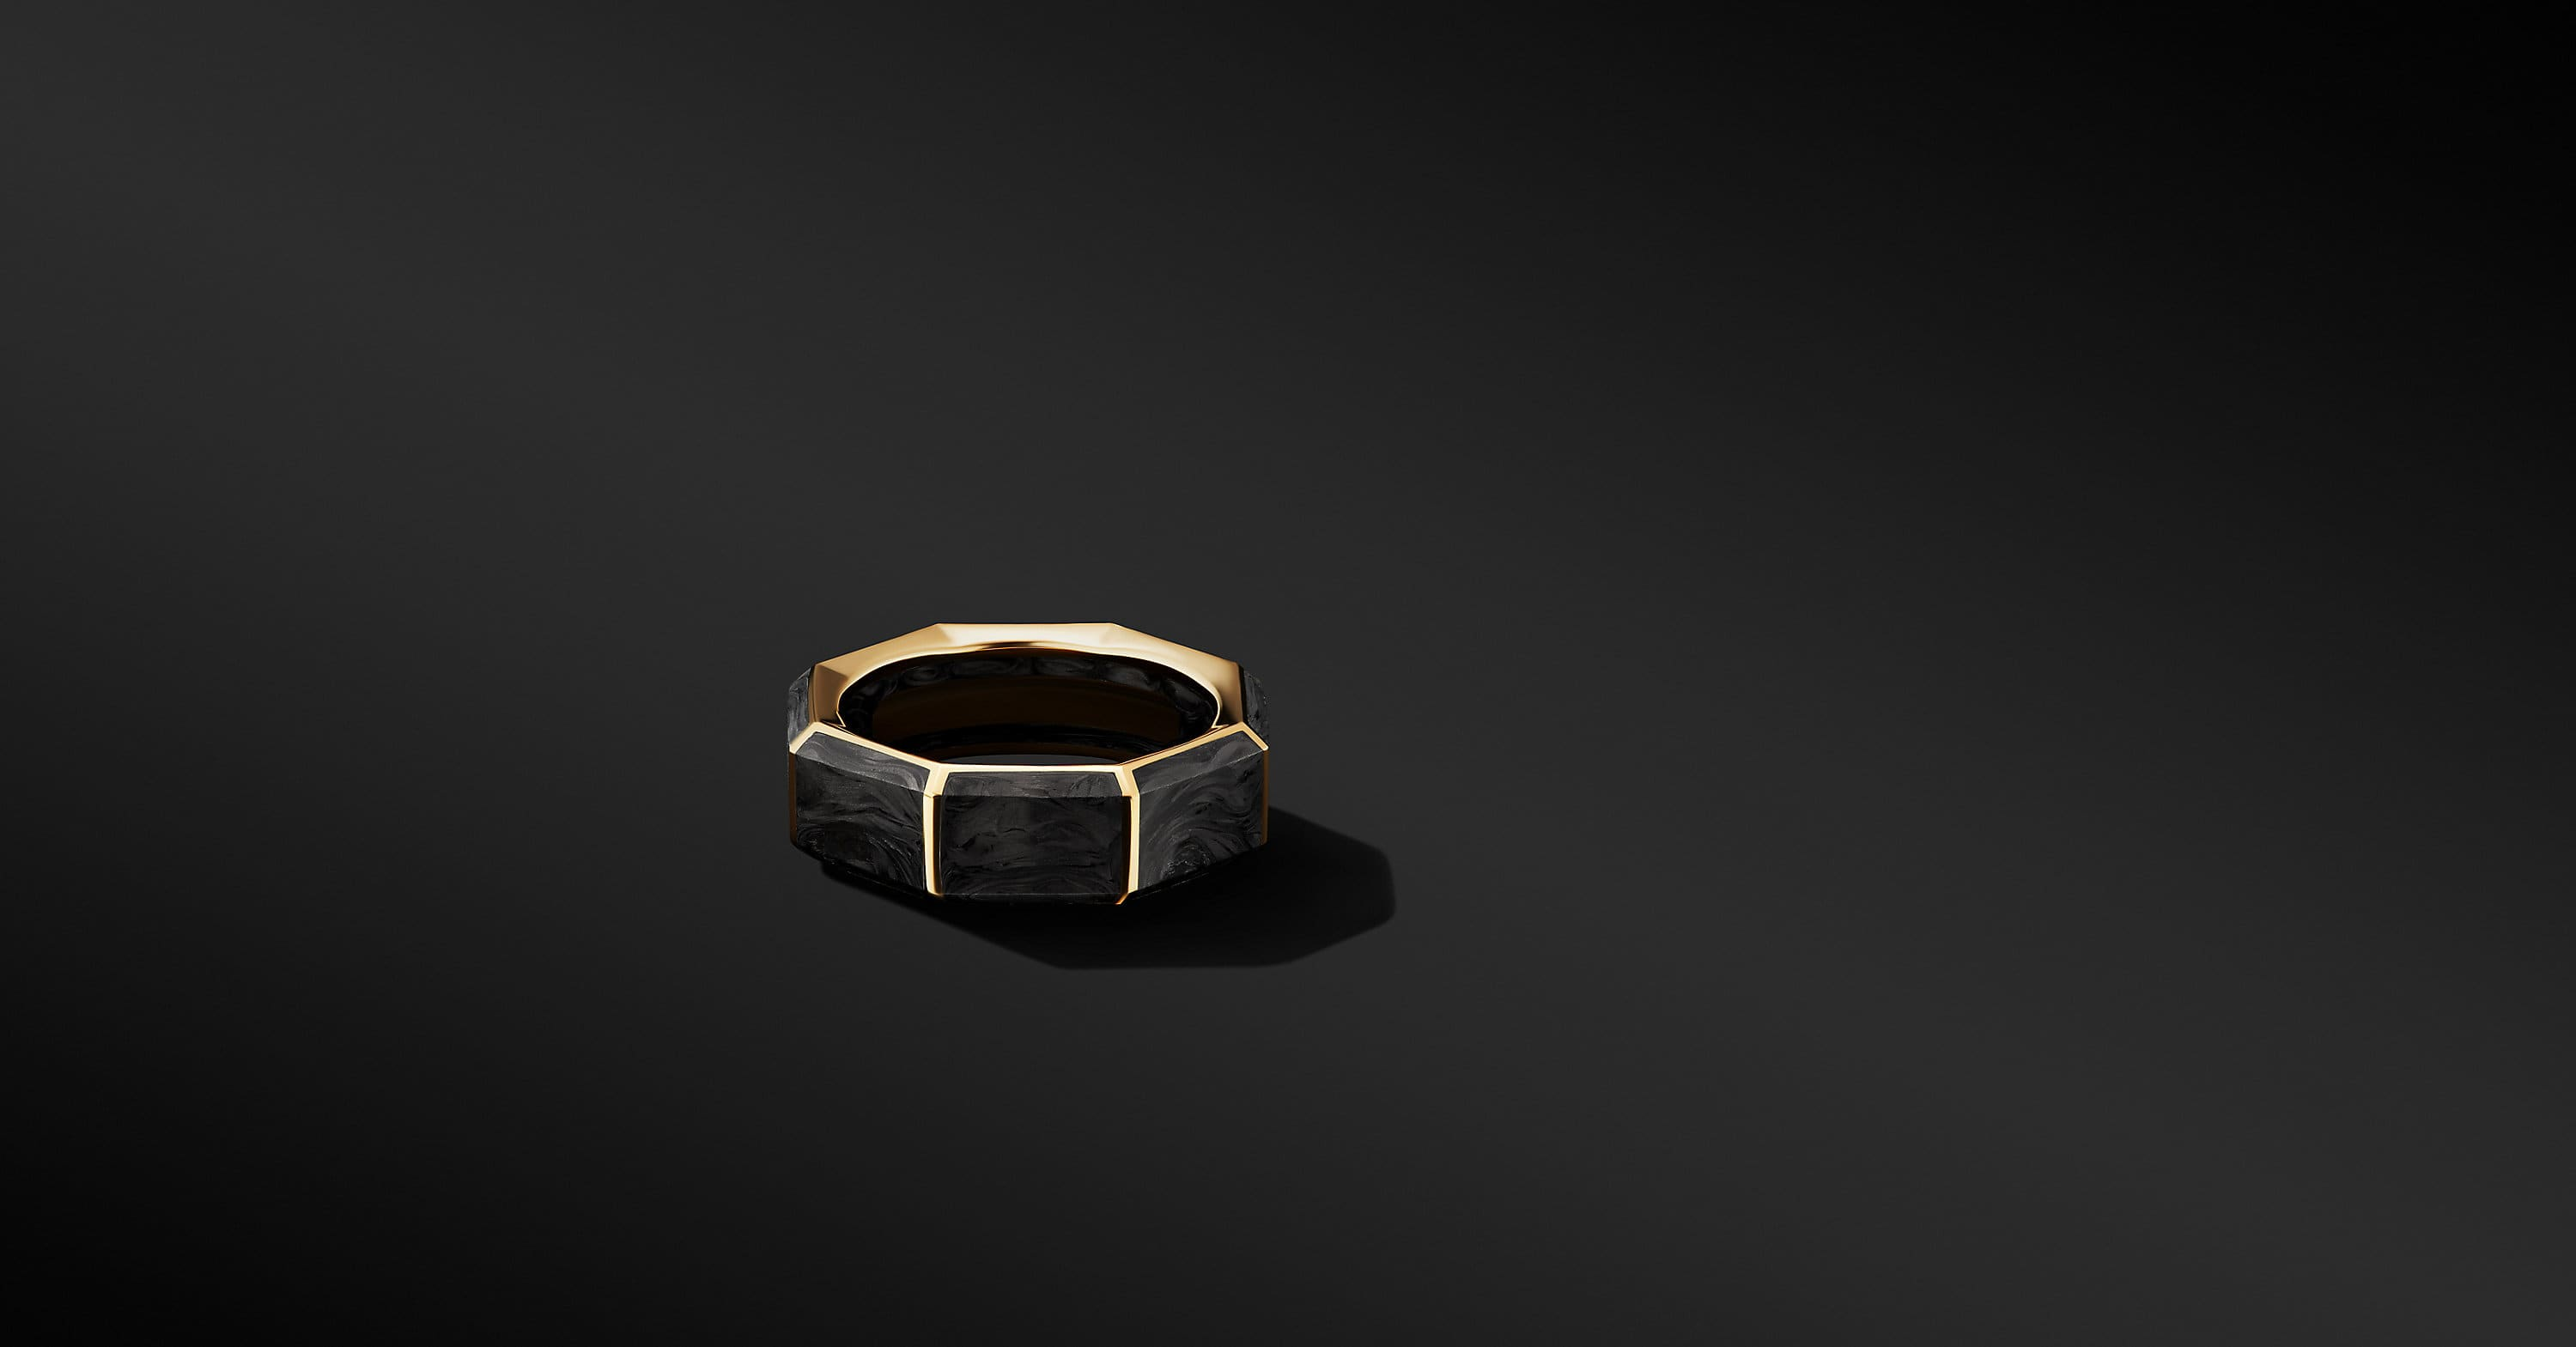 Forged Carbon Faceted Band Ring with 18K Yellow Gold, 8mm